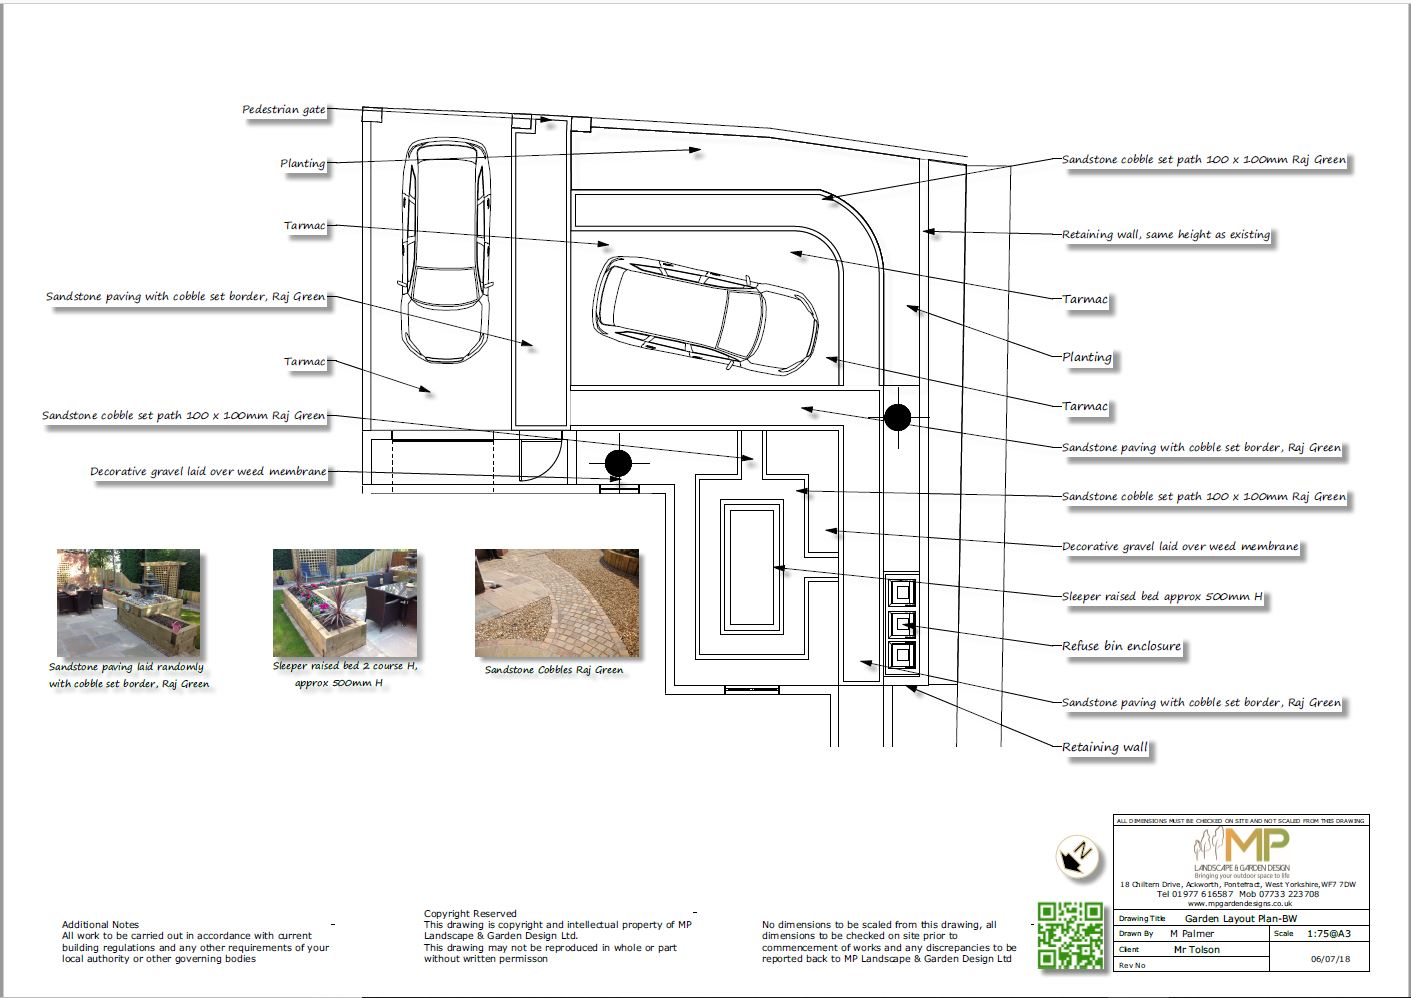 Garden layout plans black and white for a front garden in Kippax, Leeds